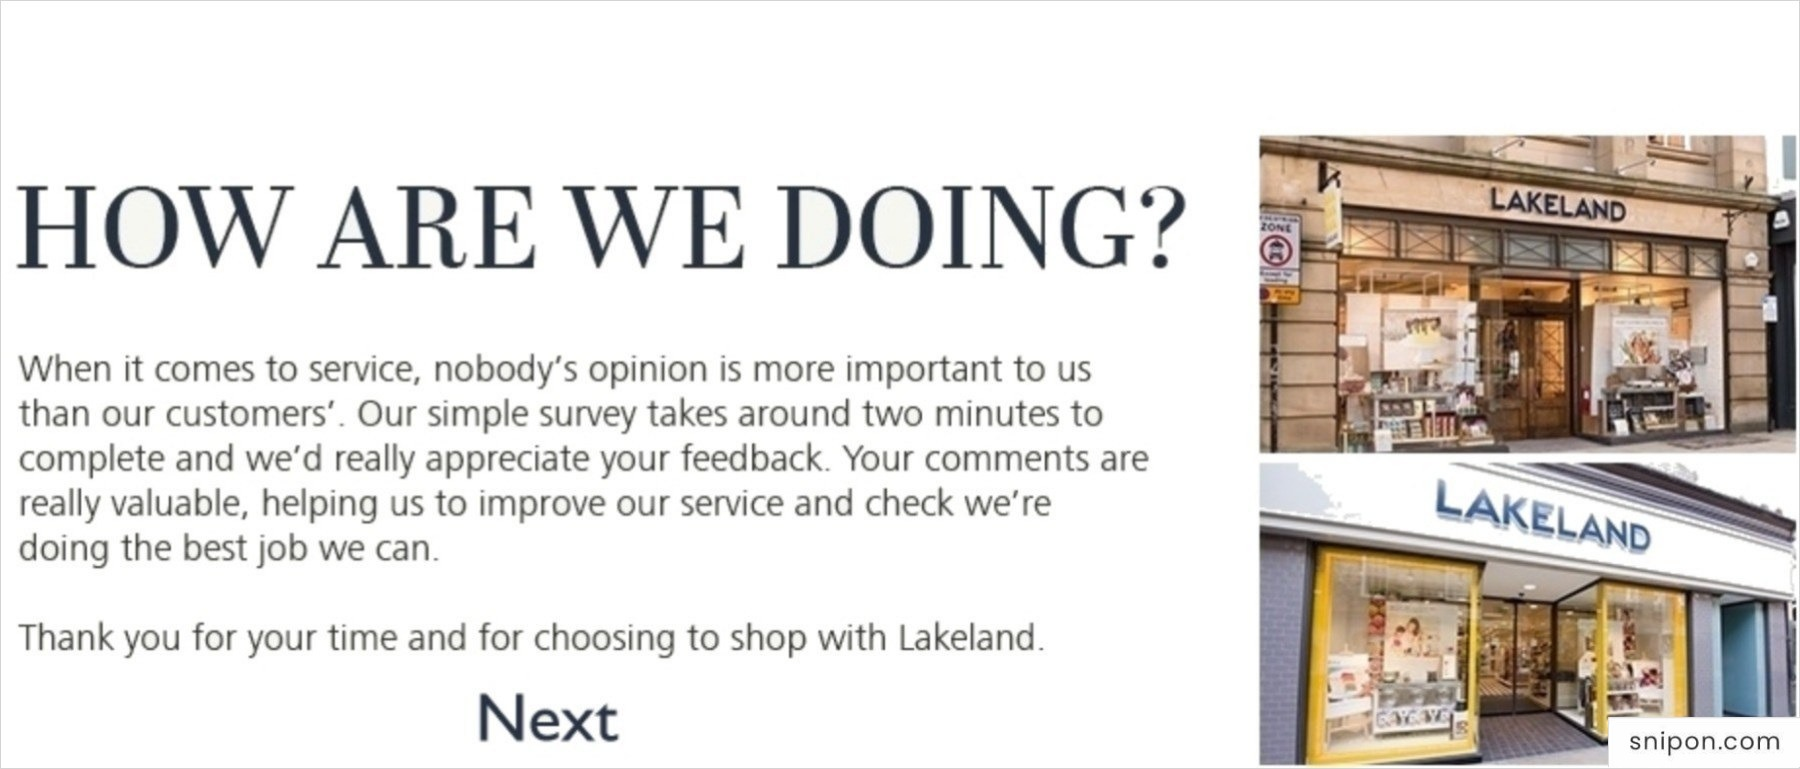 Welcome Screen of Lakeland Survey